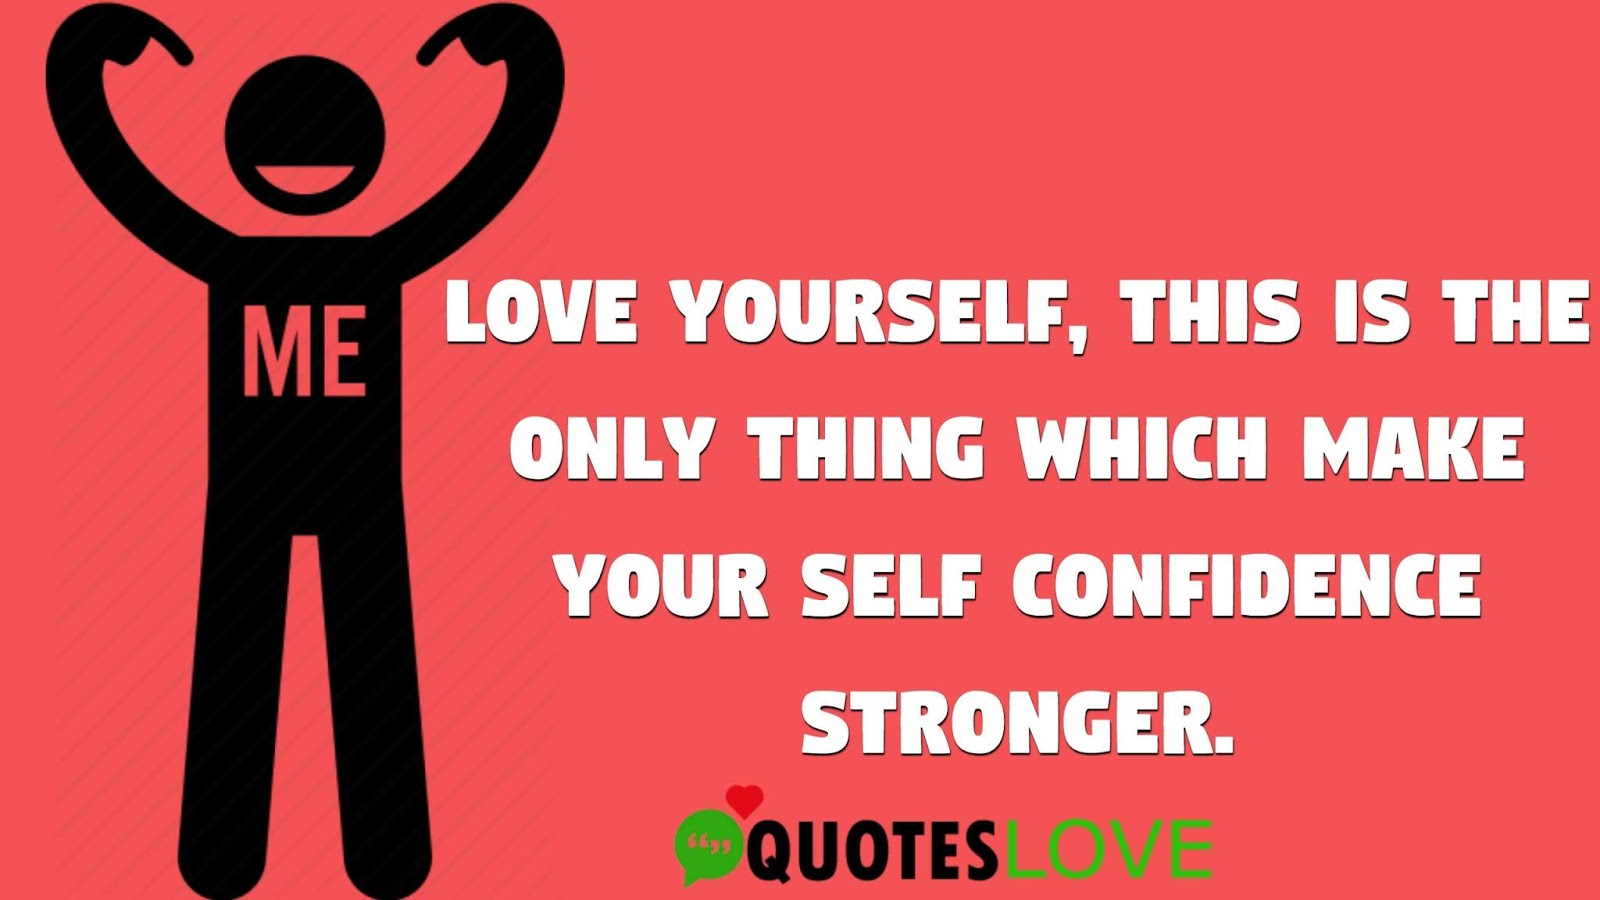 Love yourself, this is the only thing which make your self confidence stronger.